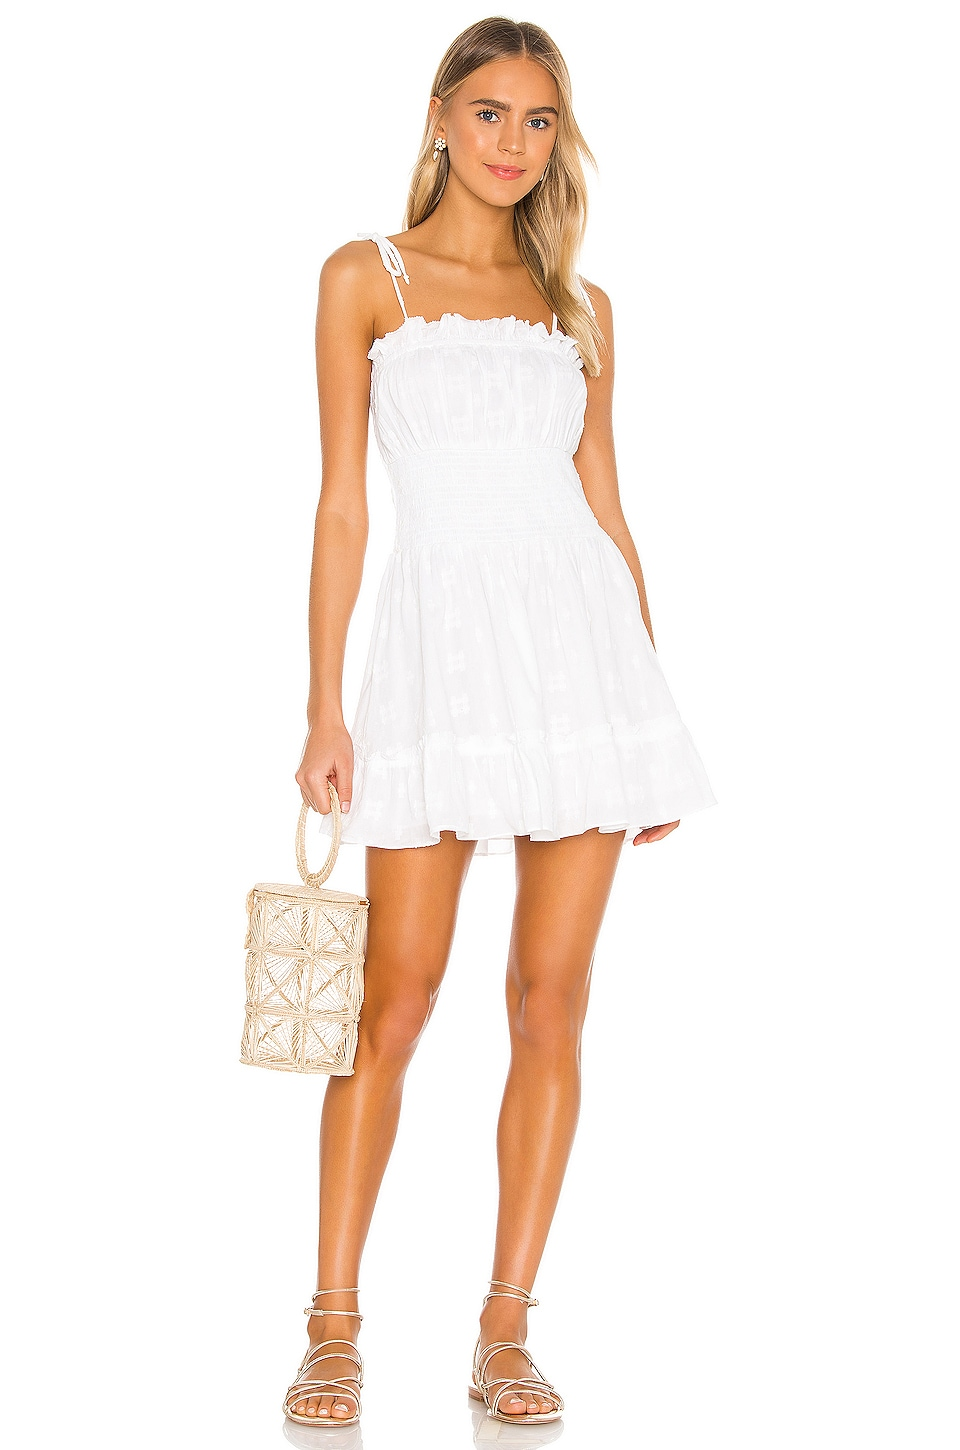 Marrakesh Mini Dress             Cleobella                                                                                                       CA$ 231.57 16